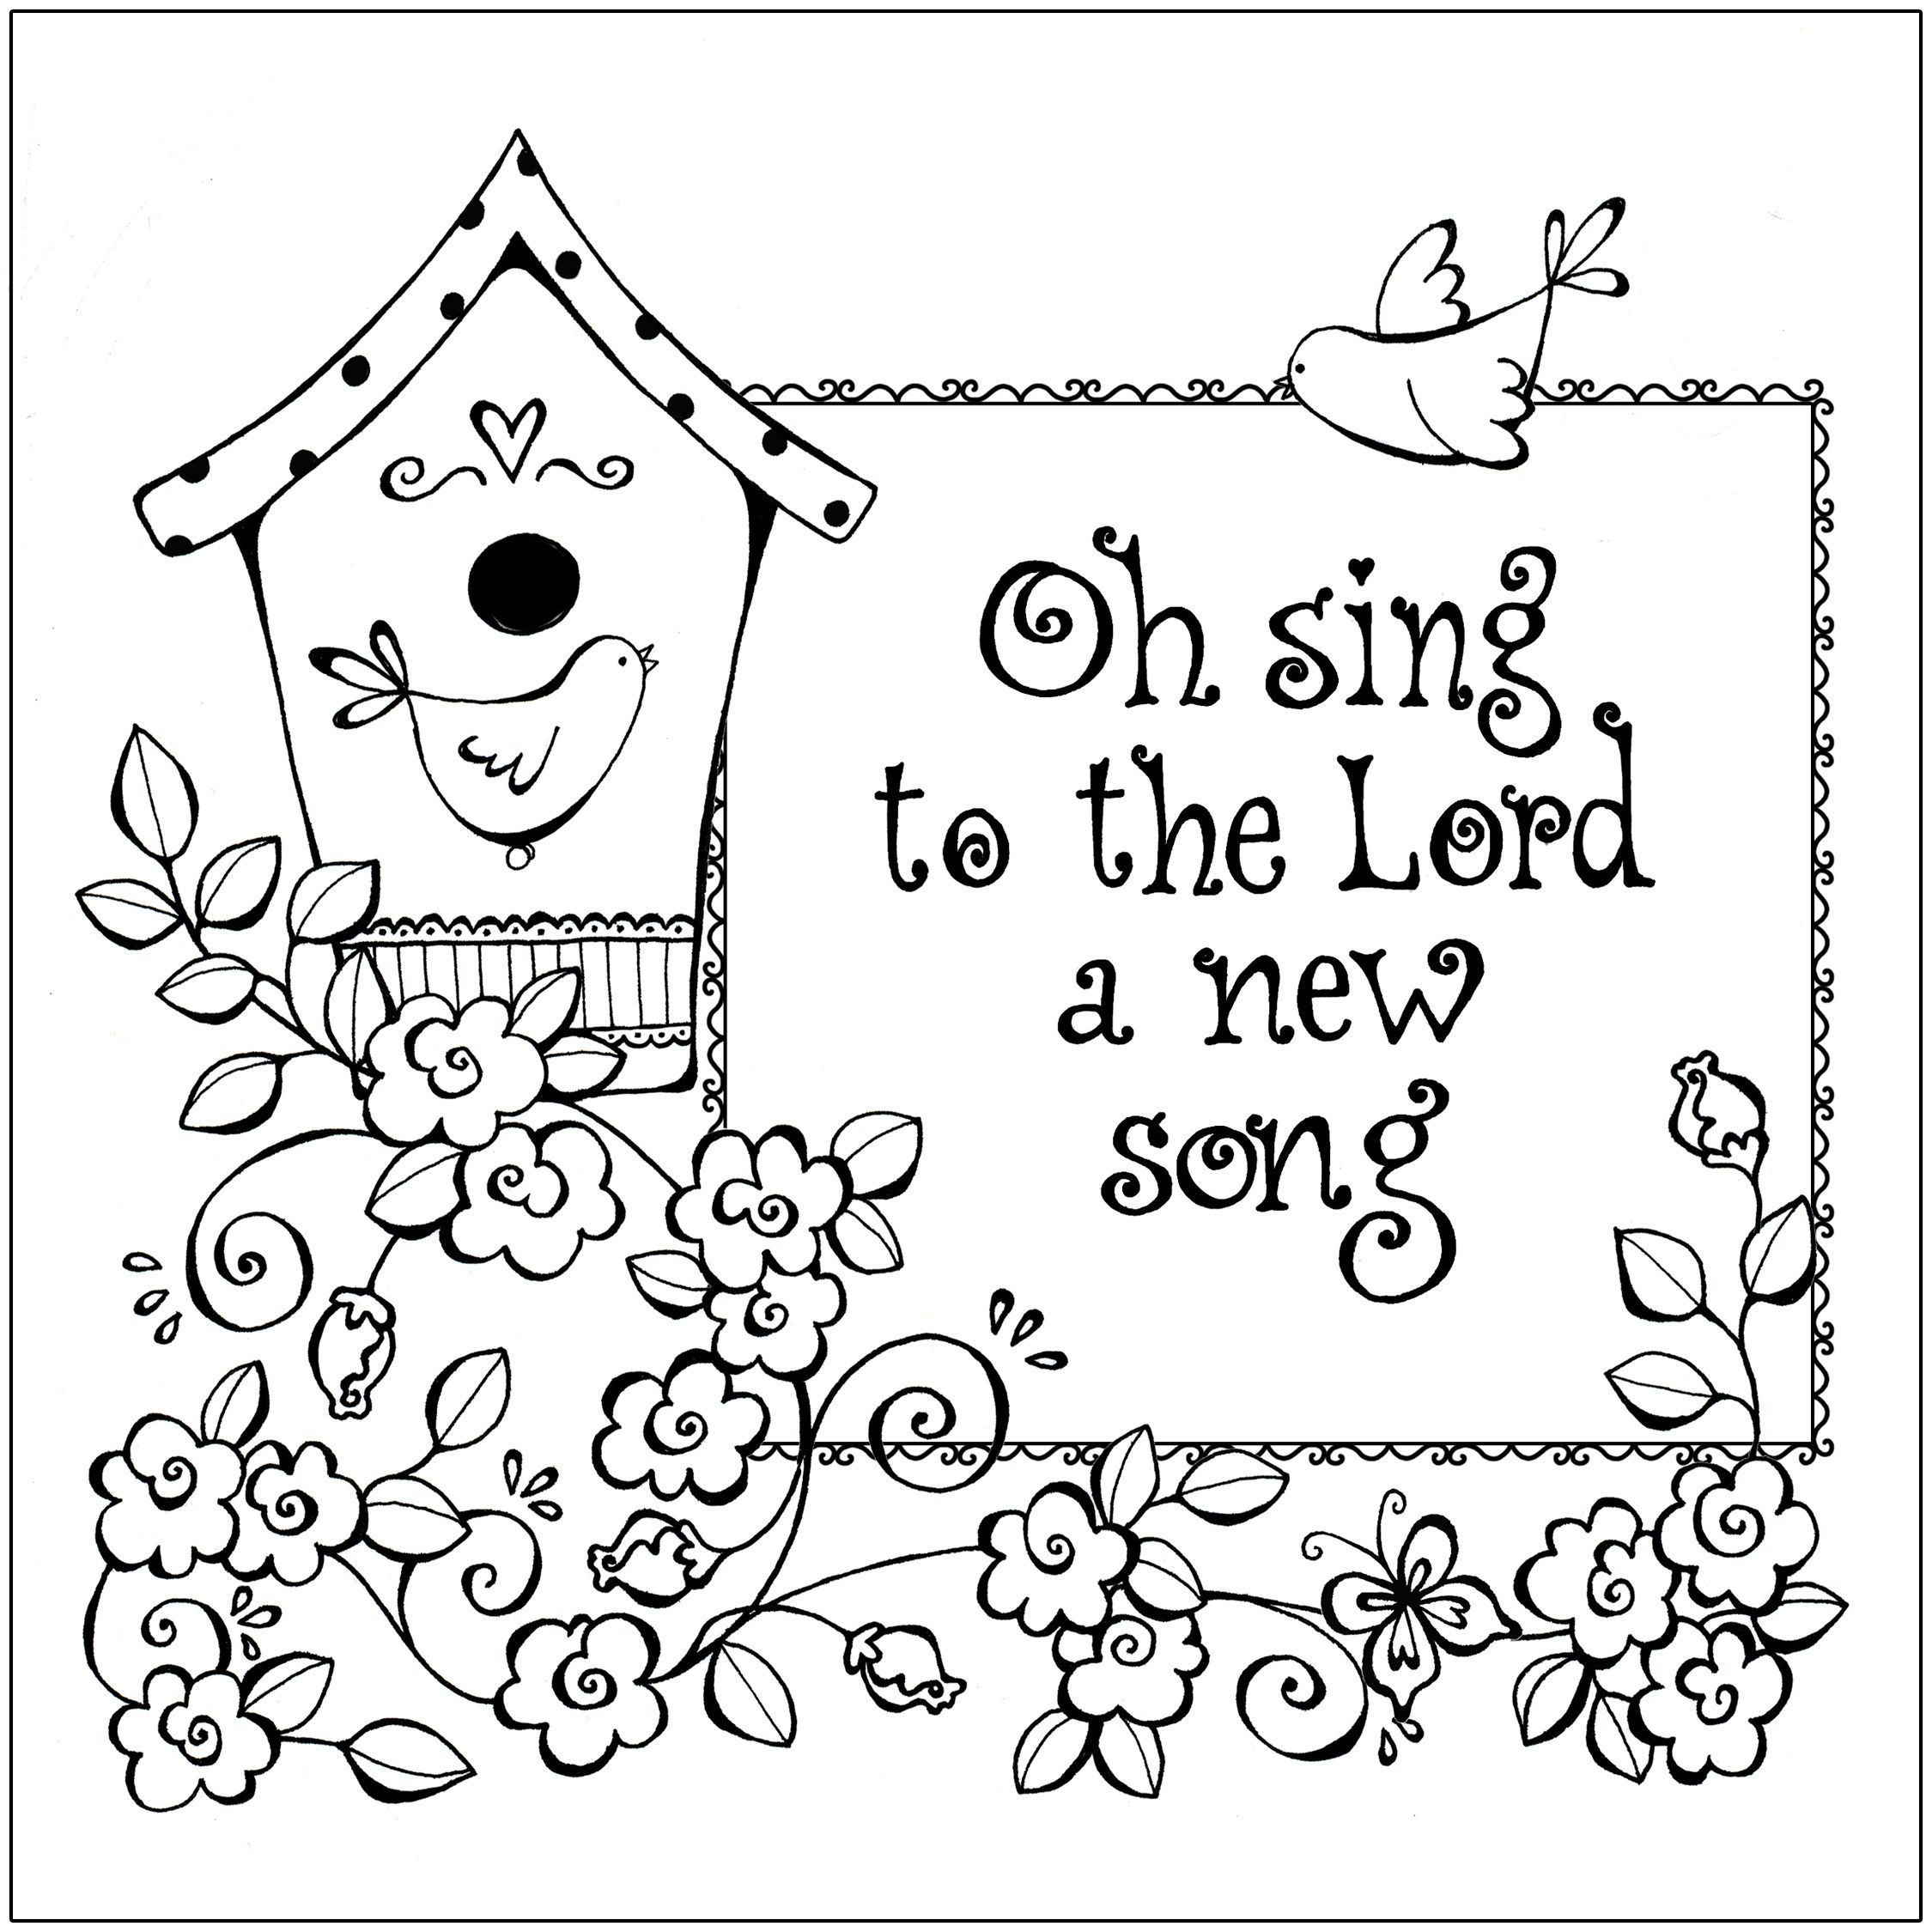 Thanksgiving coloring pages with bible verses - Summer Coloring Pages For Kids And Please Feel Free To Share It With Your Sunday